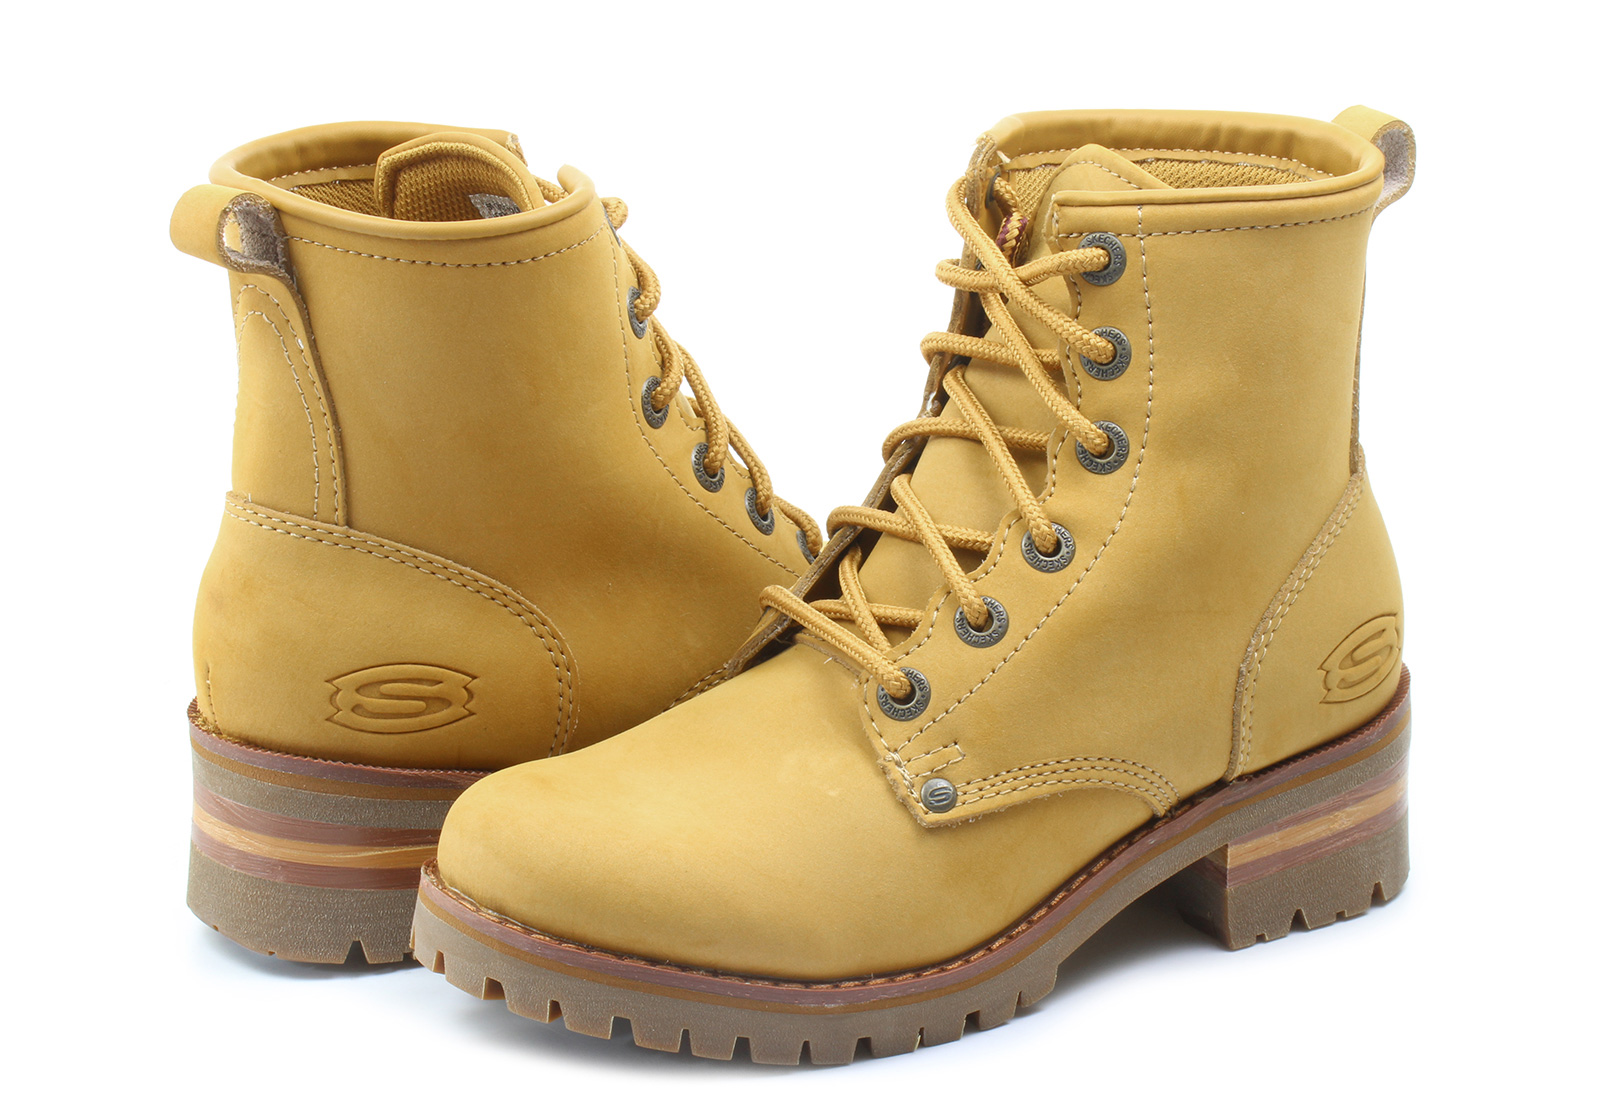 fca2f07c32e Buy skechers boots yellow > OFF66% Discounted